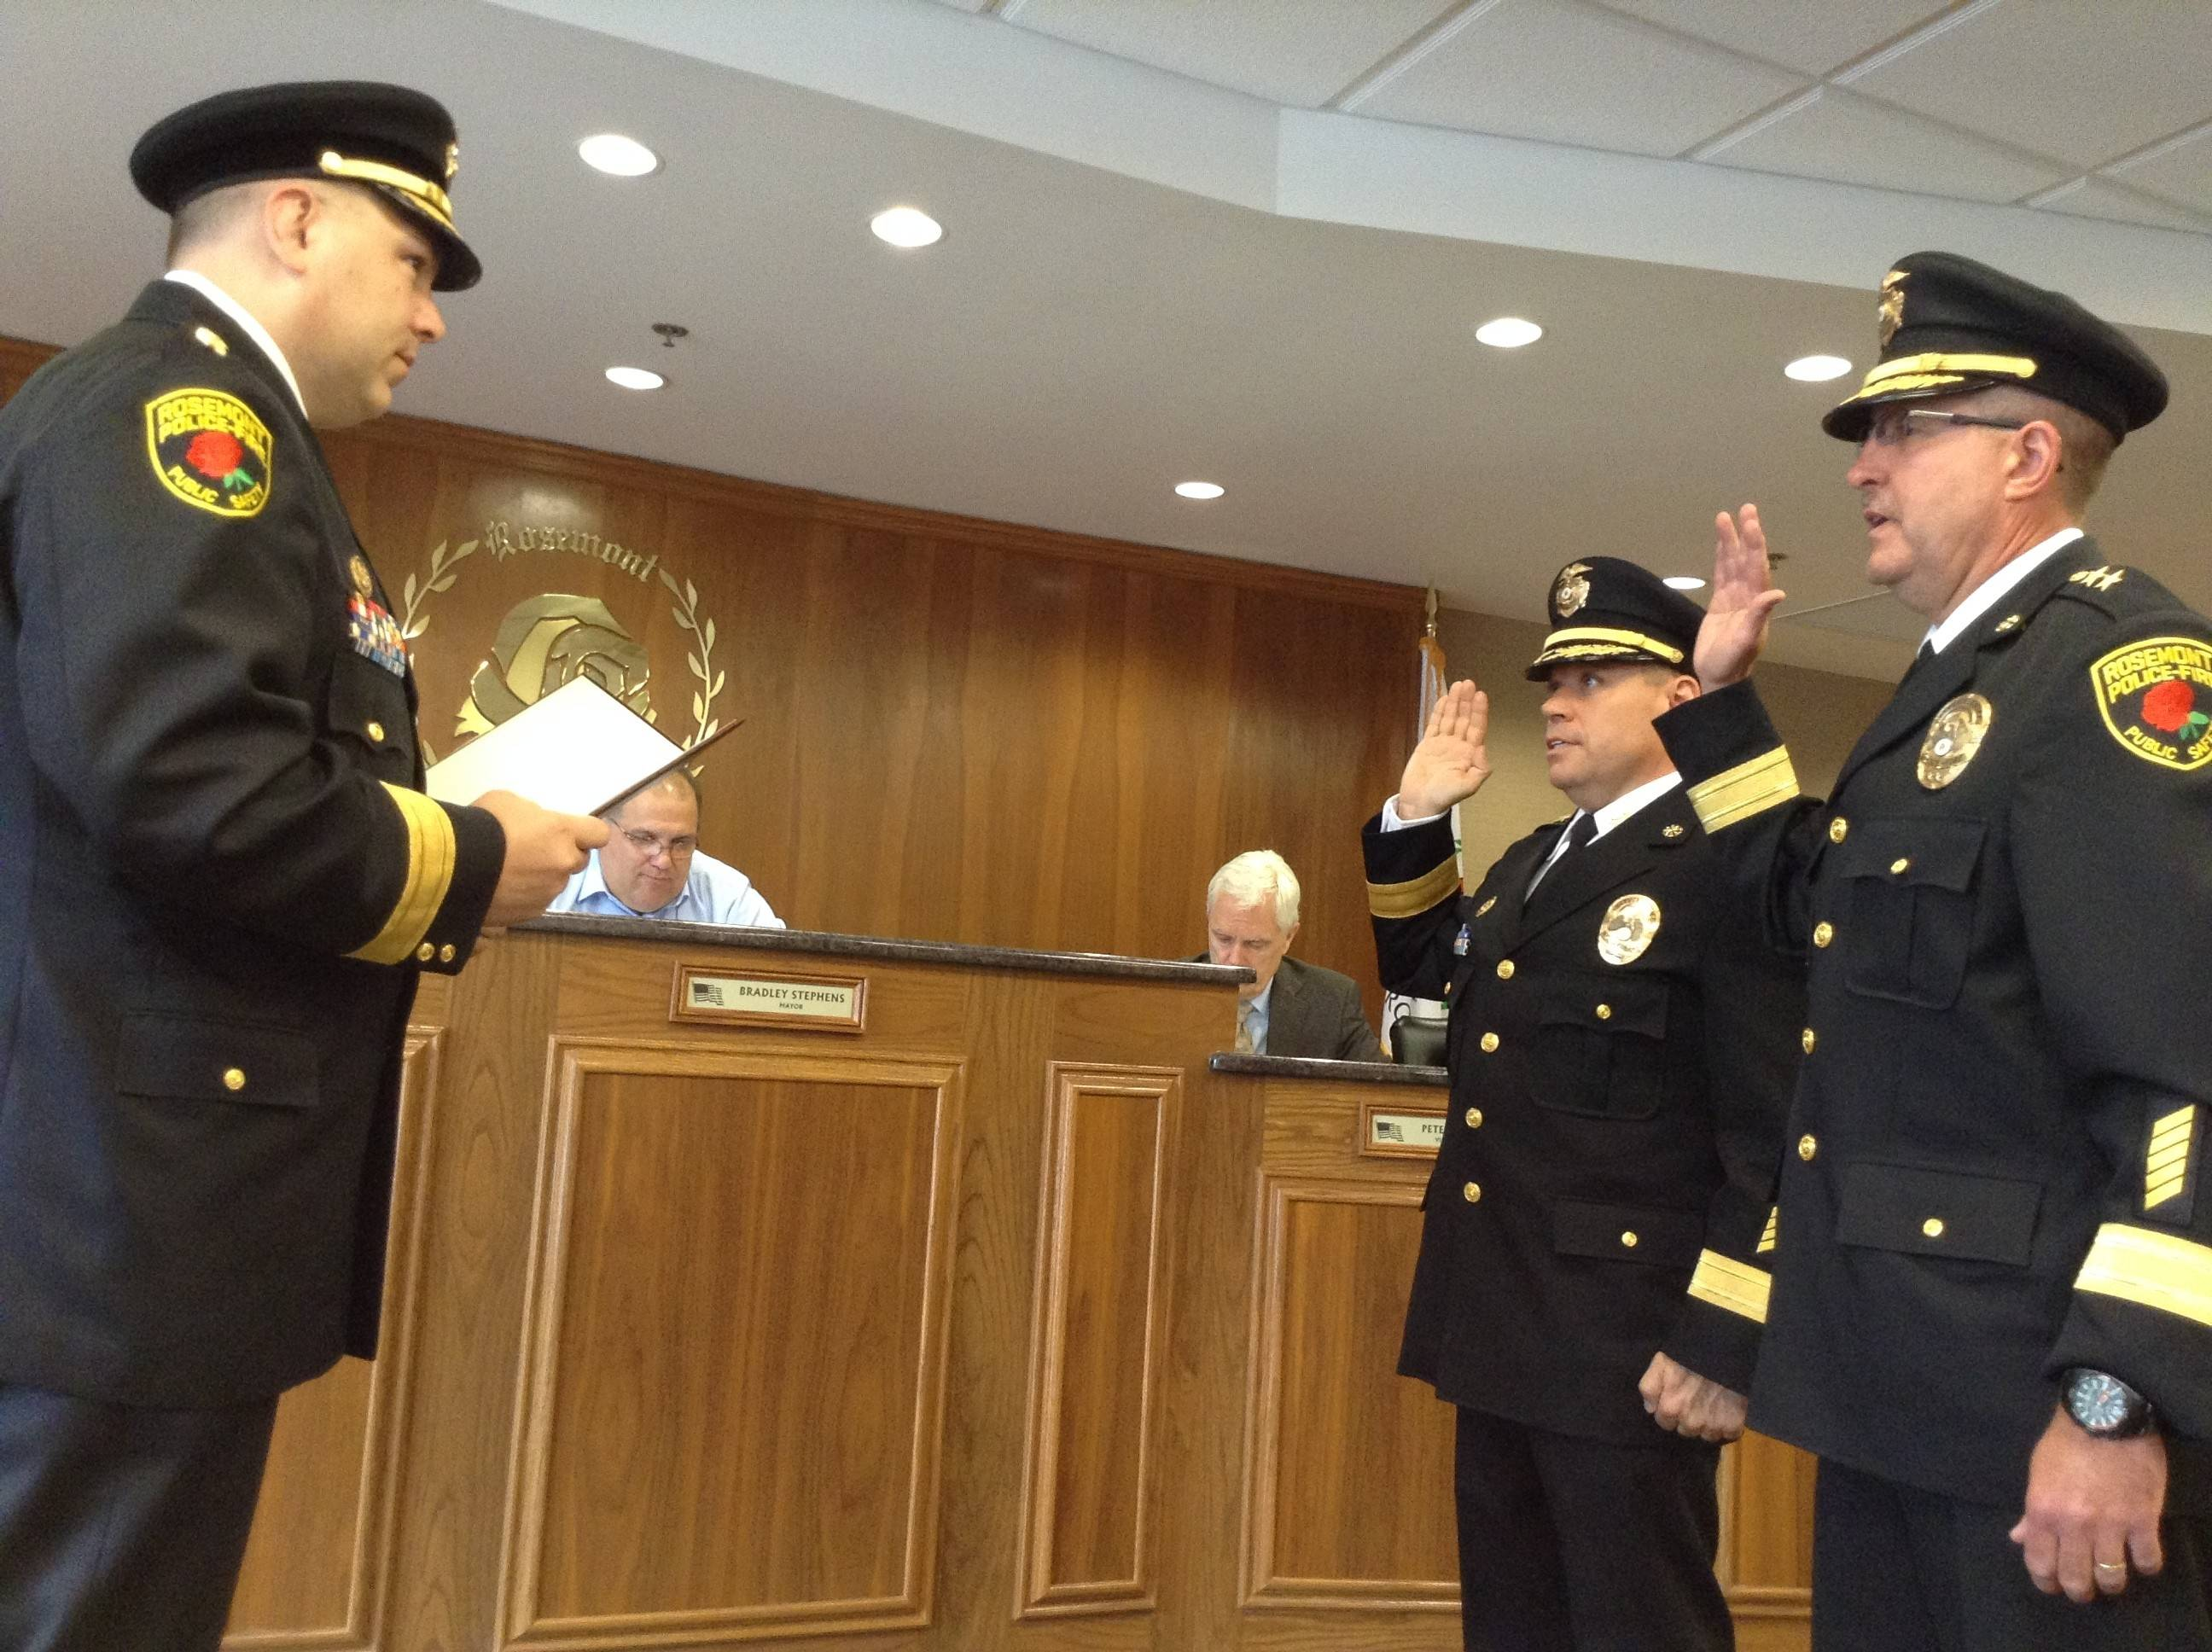 Rosemont Public Safety Department Chief Don Stephens III, left, swears in Deputy Chiefs Kevin Kukulka and John Aichinger at Wednesday's village board meeting.